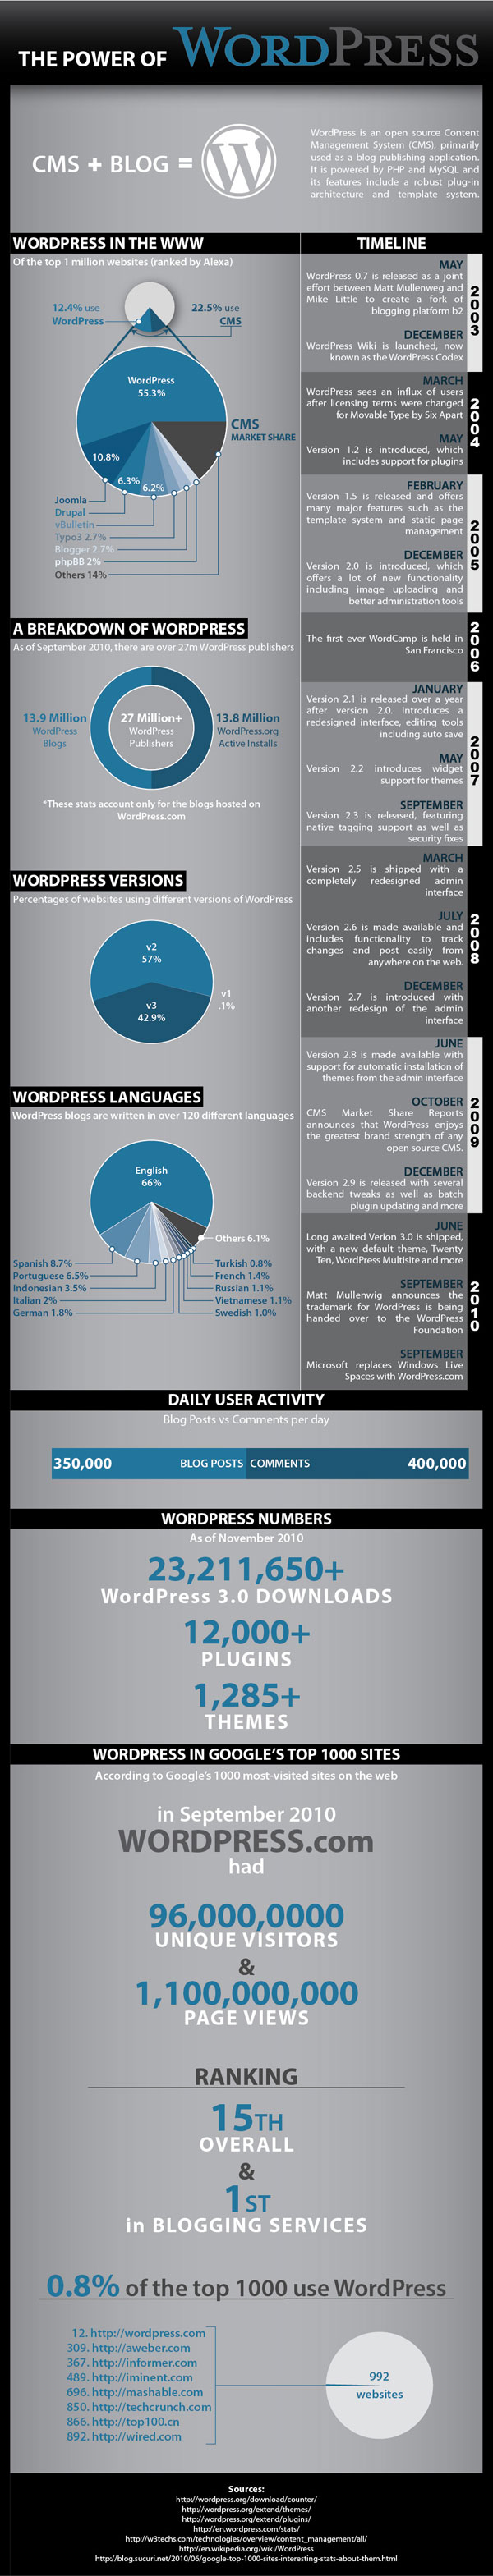 POWordpress v4 600 jonno rodd The Power of WordPress [Infographic]